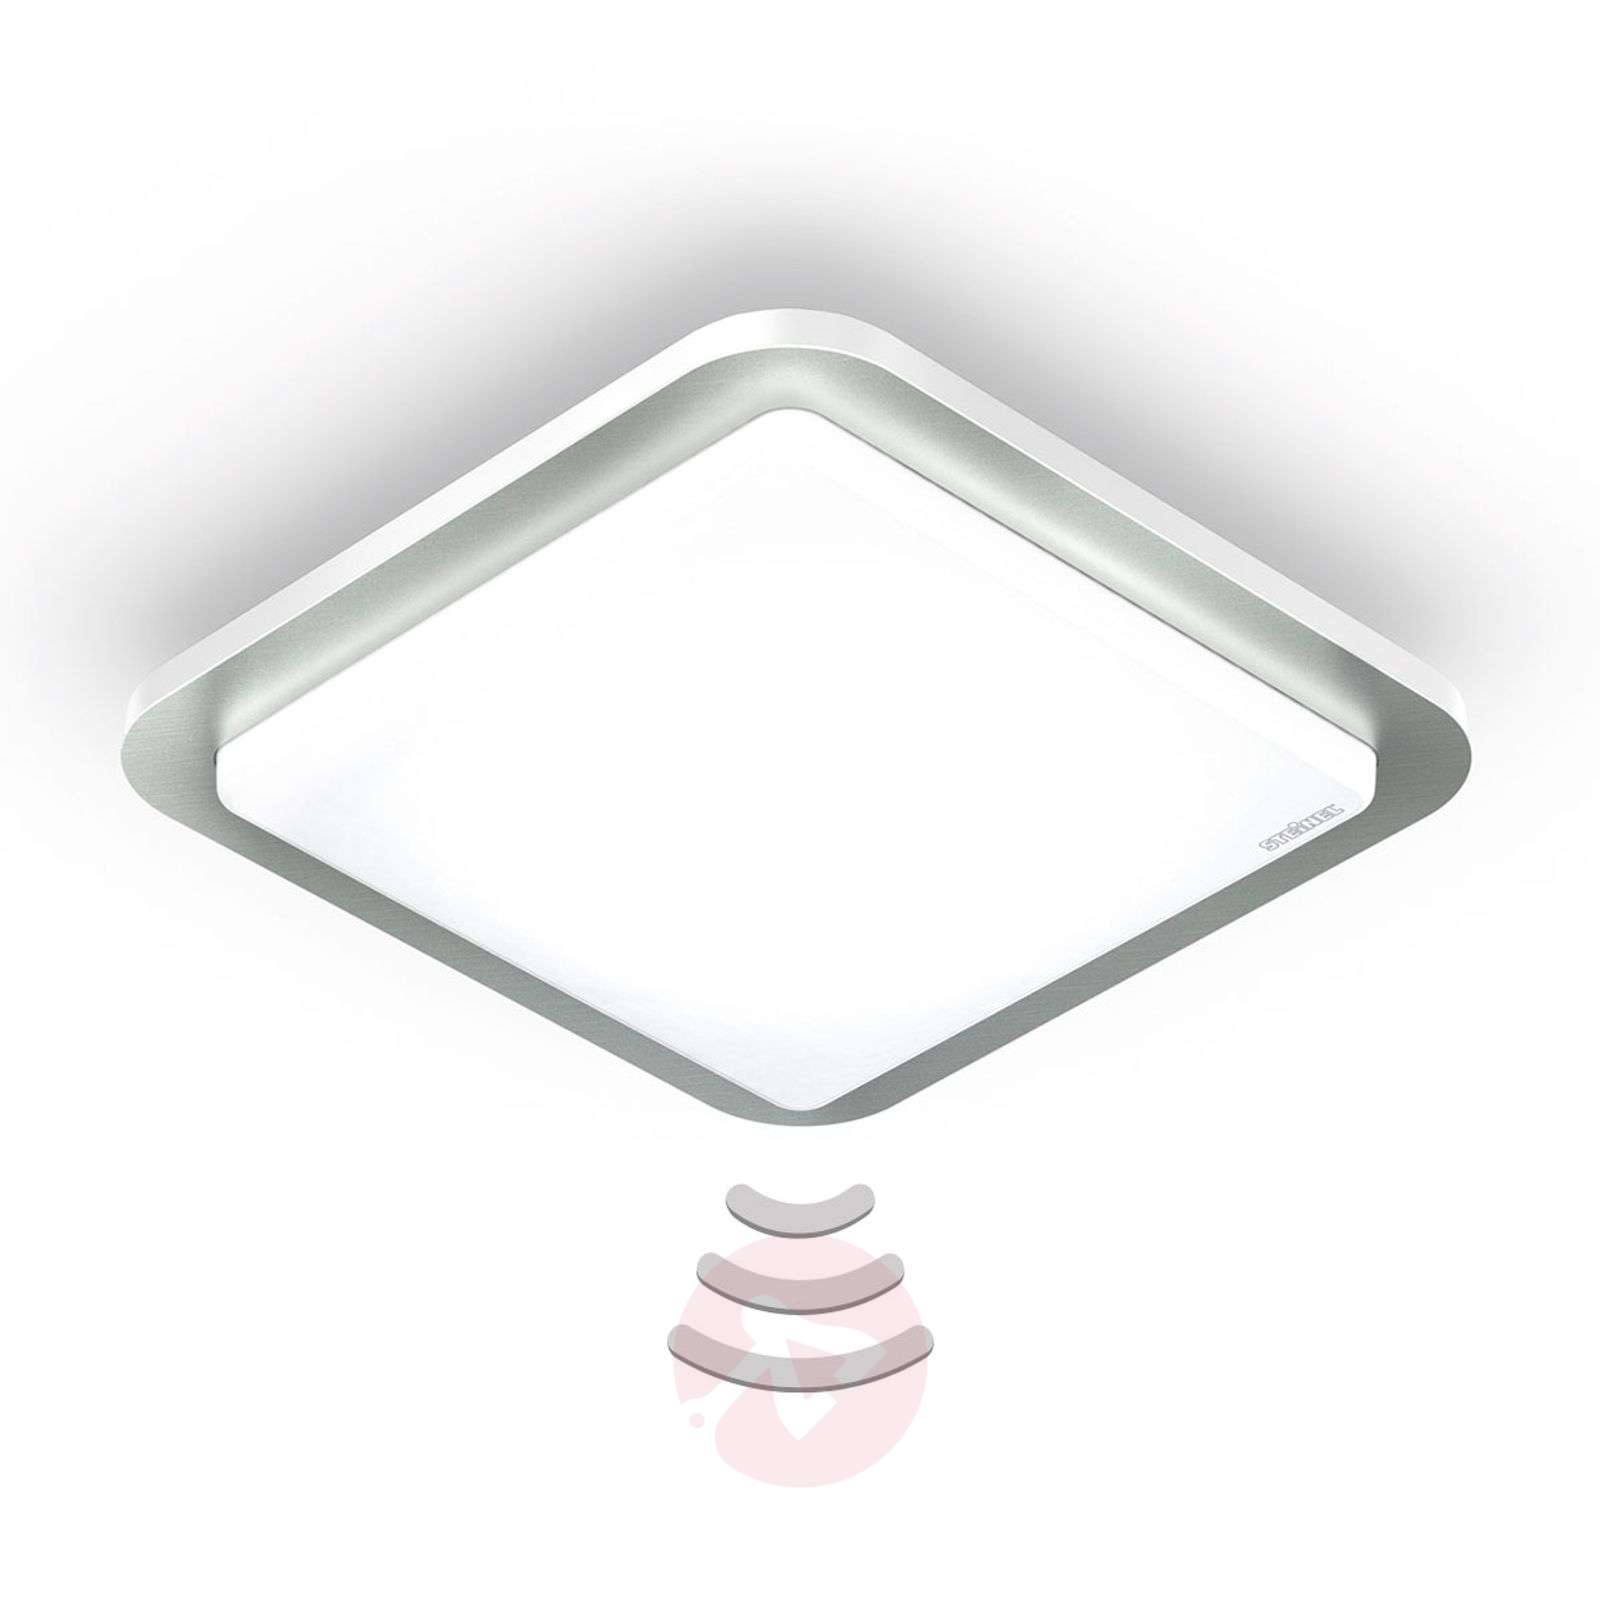 STEINEL RS D2 V3 lampa sufitowa LED stal